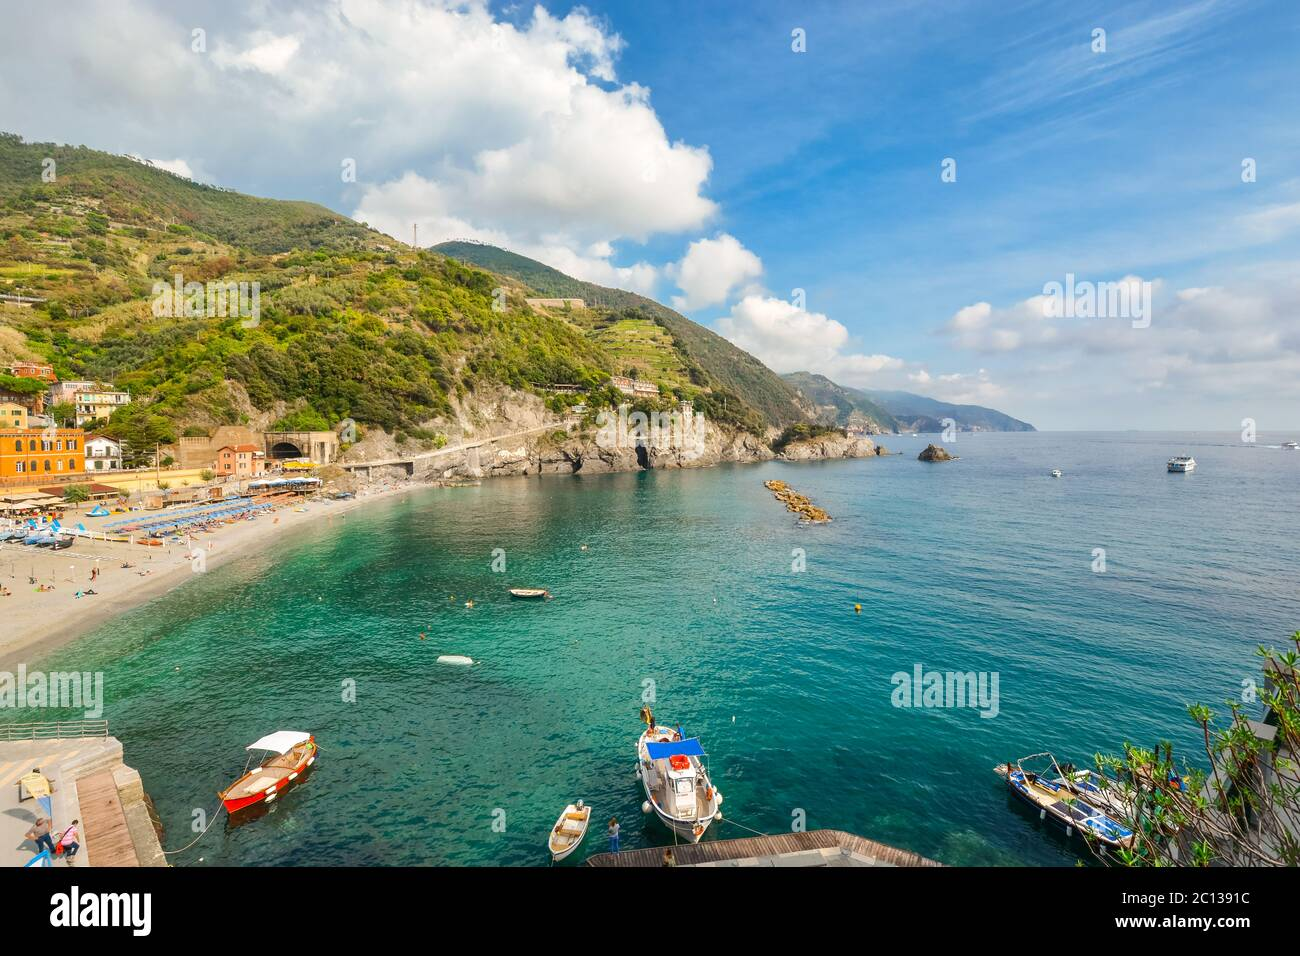 The sandy beach at Monterosso al Mare, Cinque Terre Italy with boats in the sea and the coastline stretching behind Stock Photo